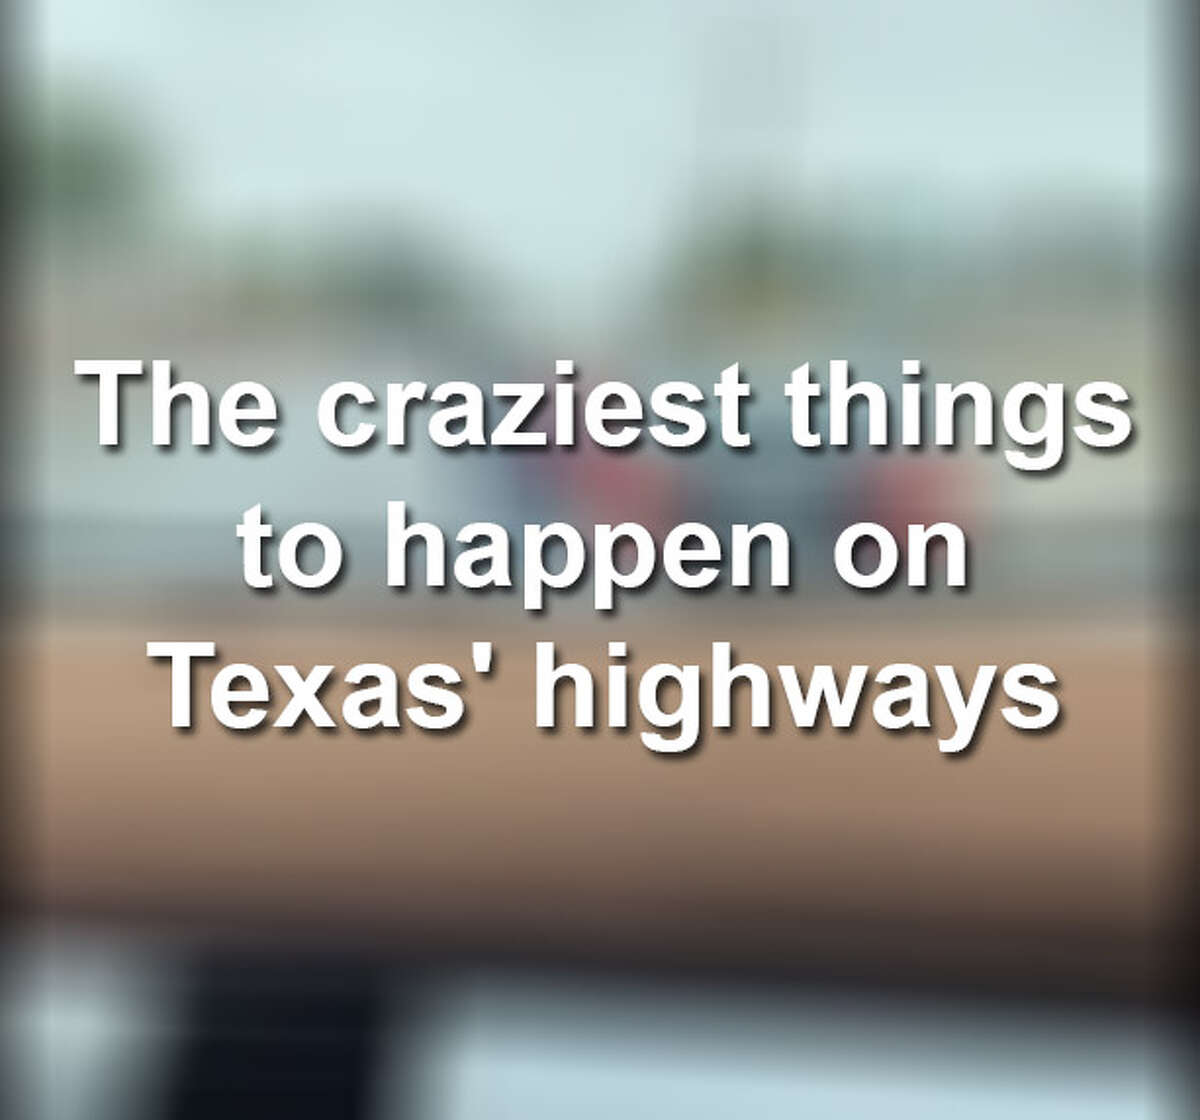 From road rage to dangerous stunts, see some of the craziest things that have happened on Texas highways.